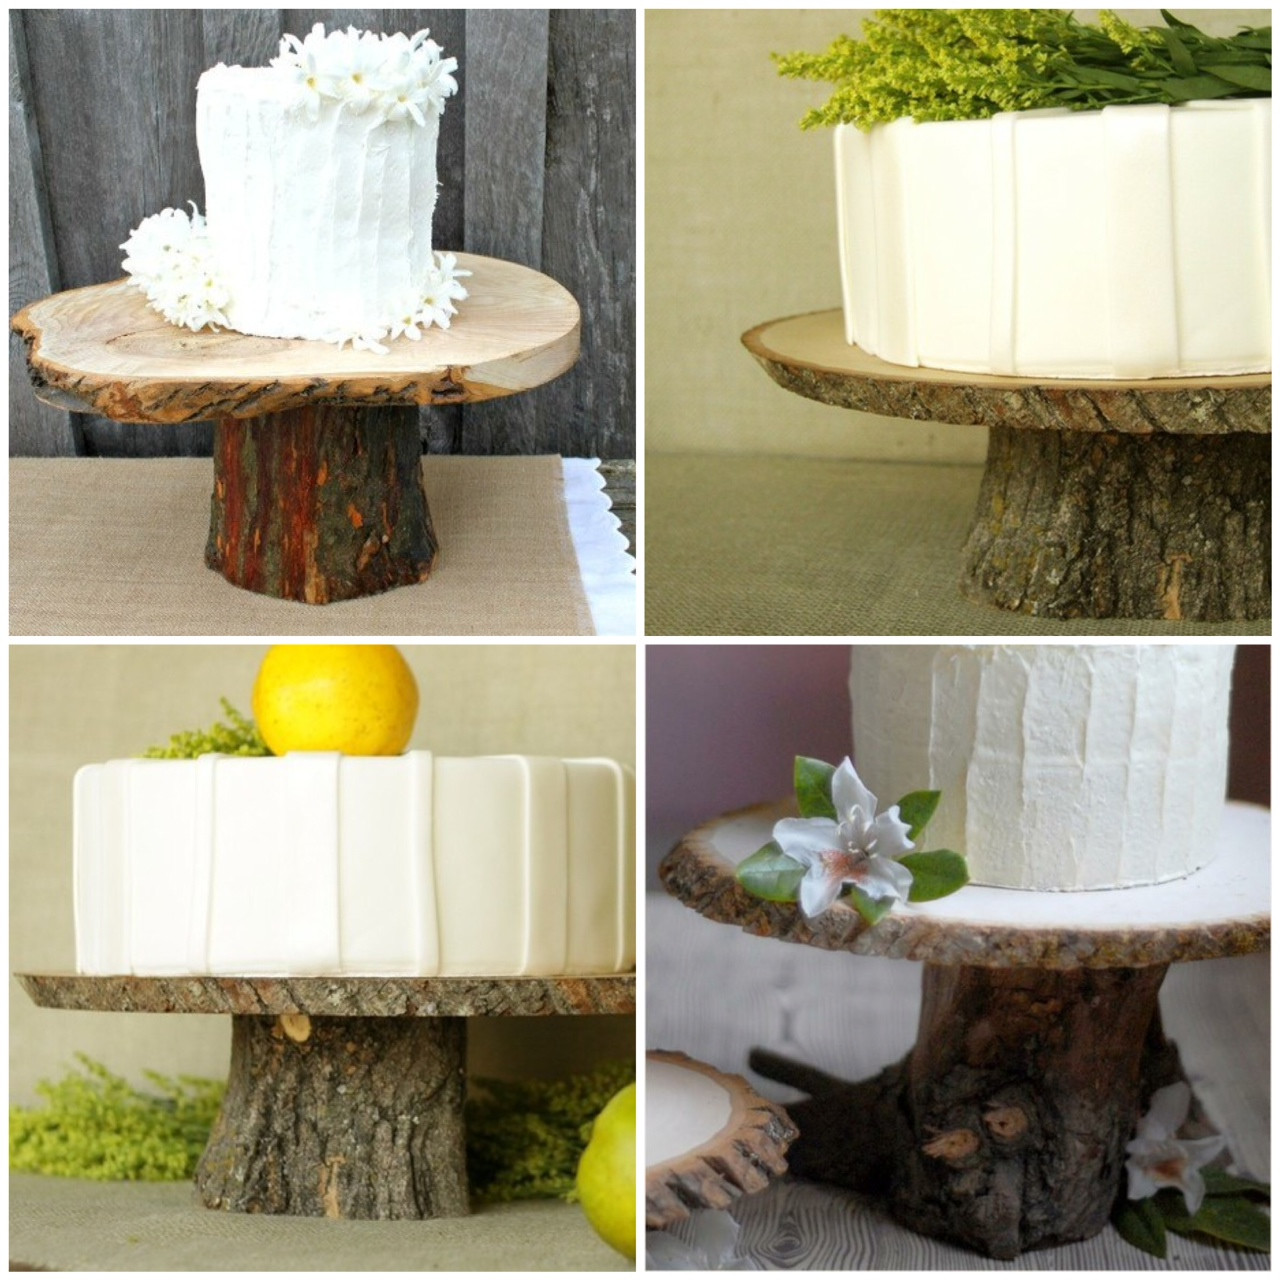 Best ideas about Wood Cake Stand DIY . Save or Pin Rustic Wood Cake Stands a DIY Now.